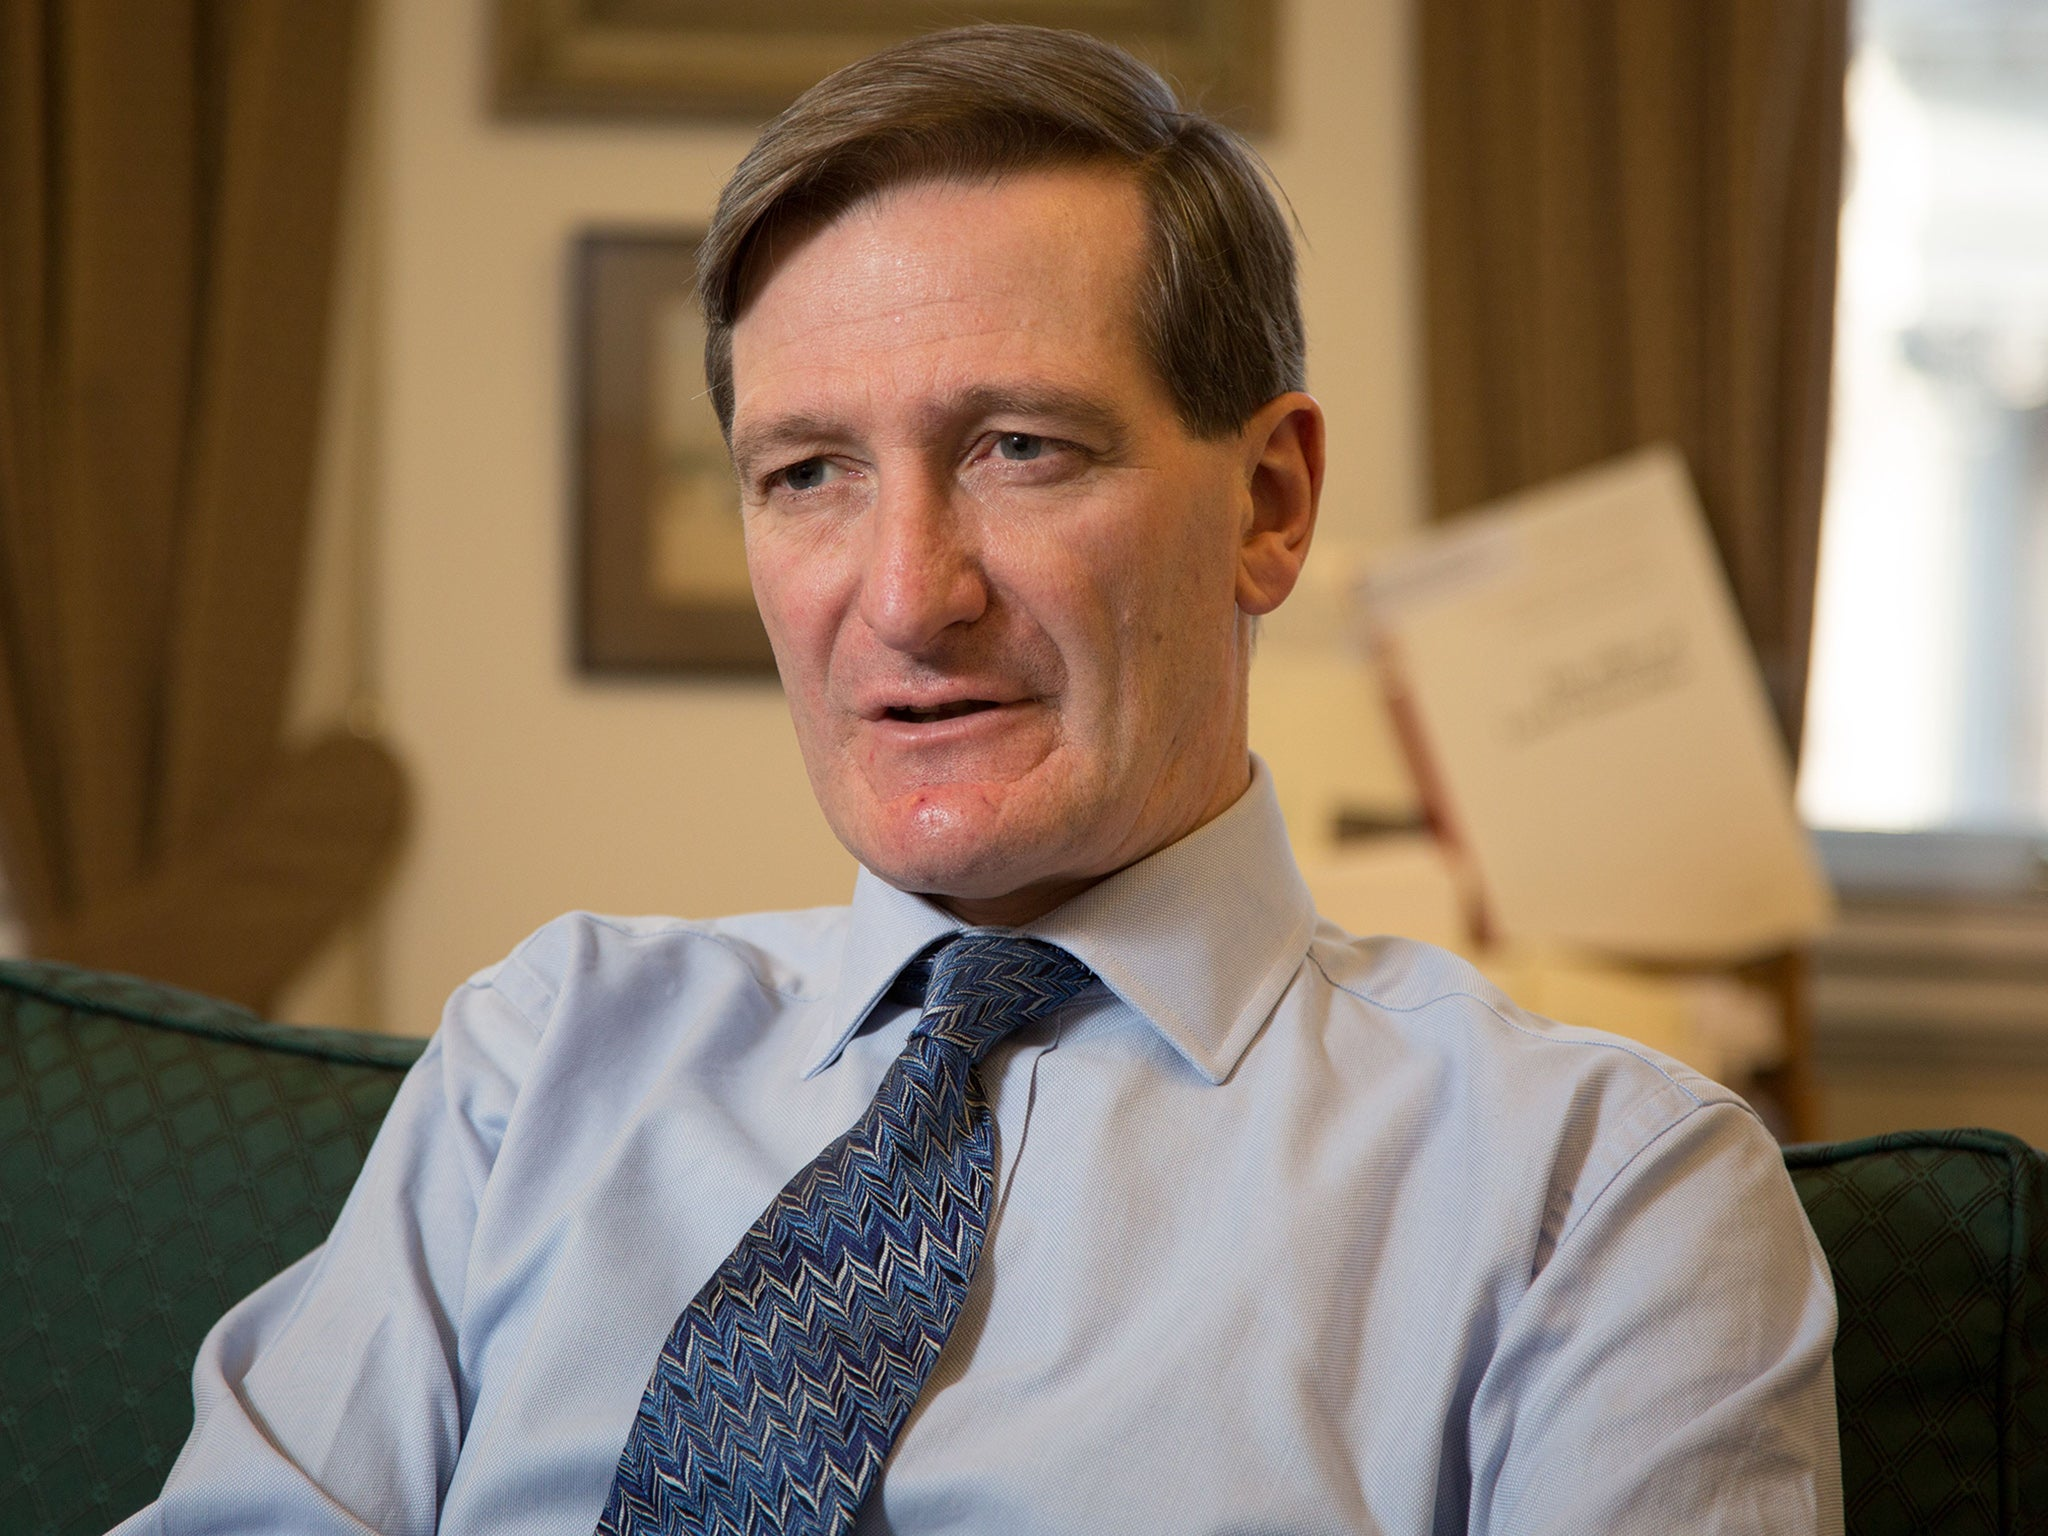 Brexit: 'The time is now' for Britons to change mind on leaving EU, says Tory MP and former Attorney General Dominic Grieve